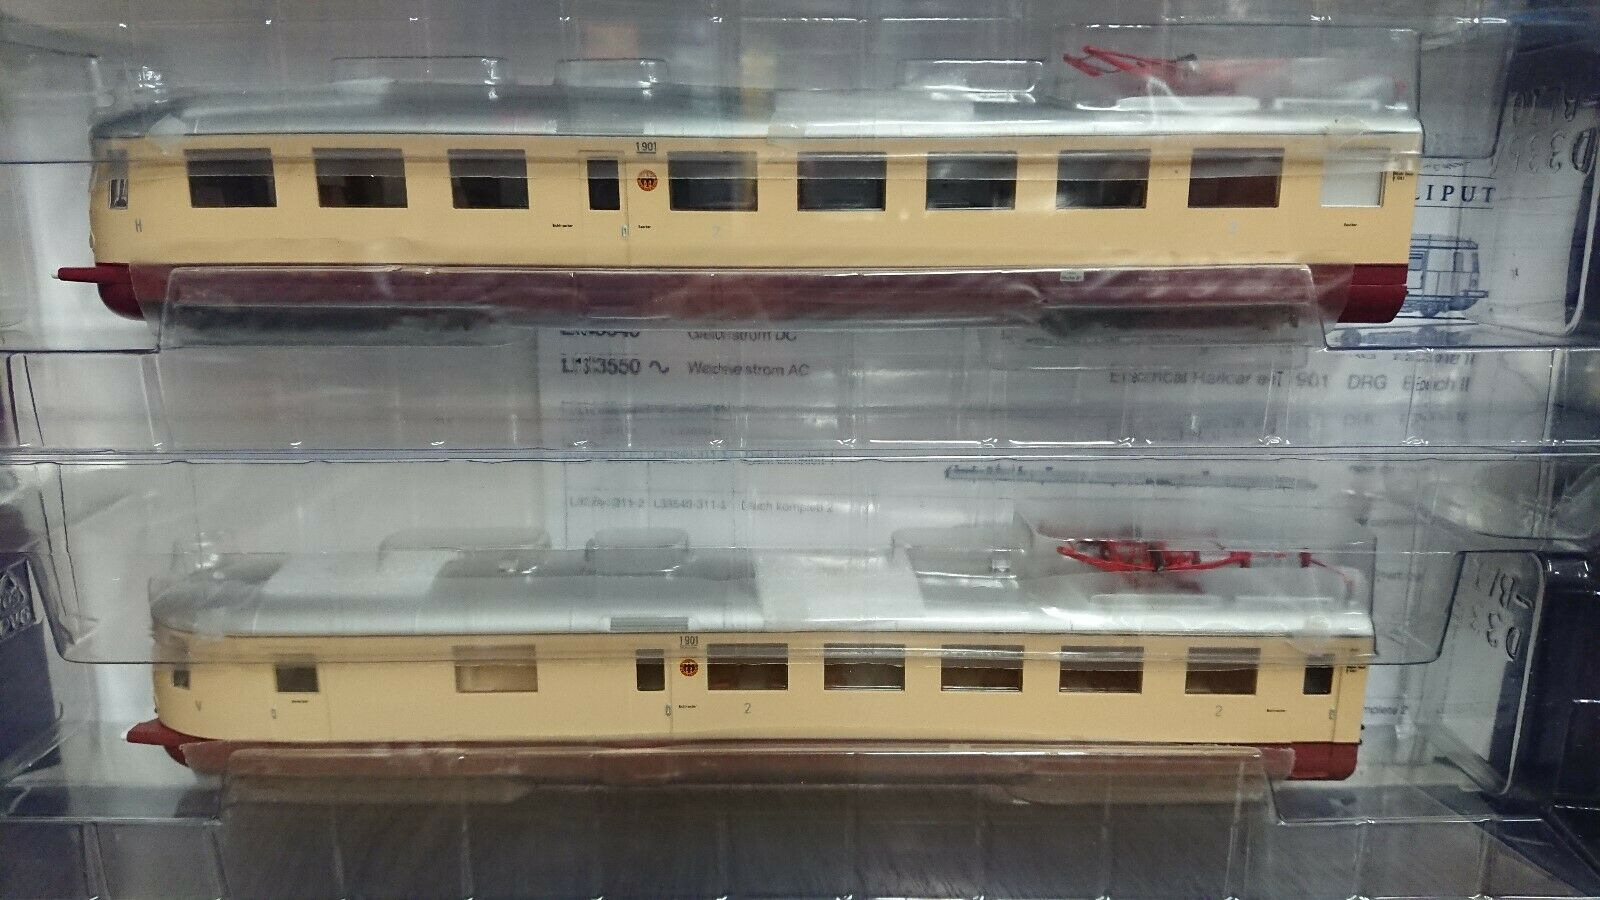 Bachuomon Liliput L133540 HO 187 2 piece Electric Train DRG Period II nuovo